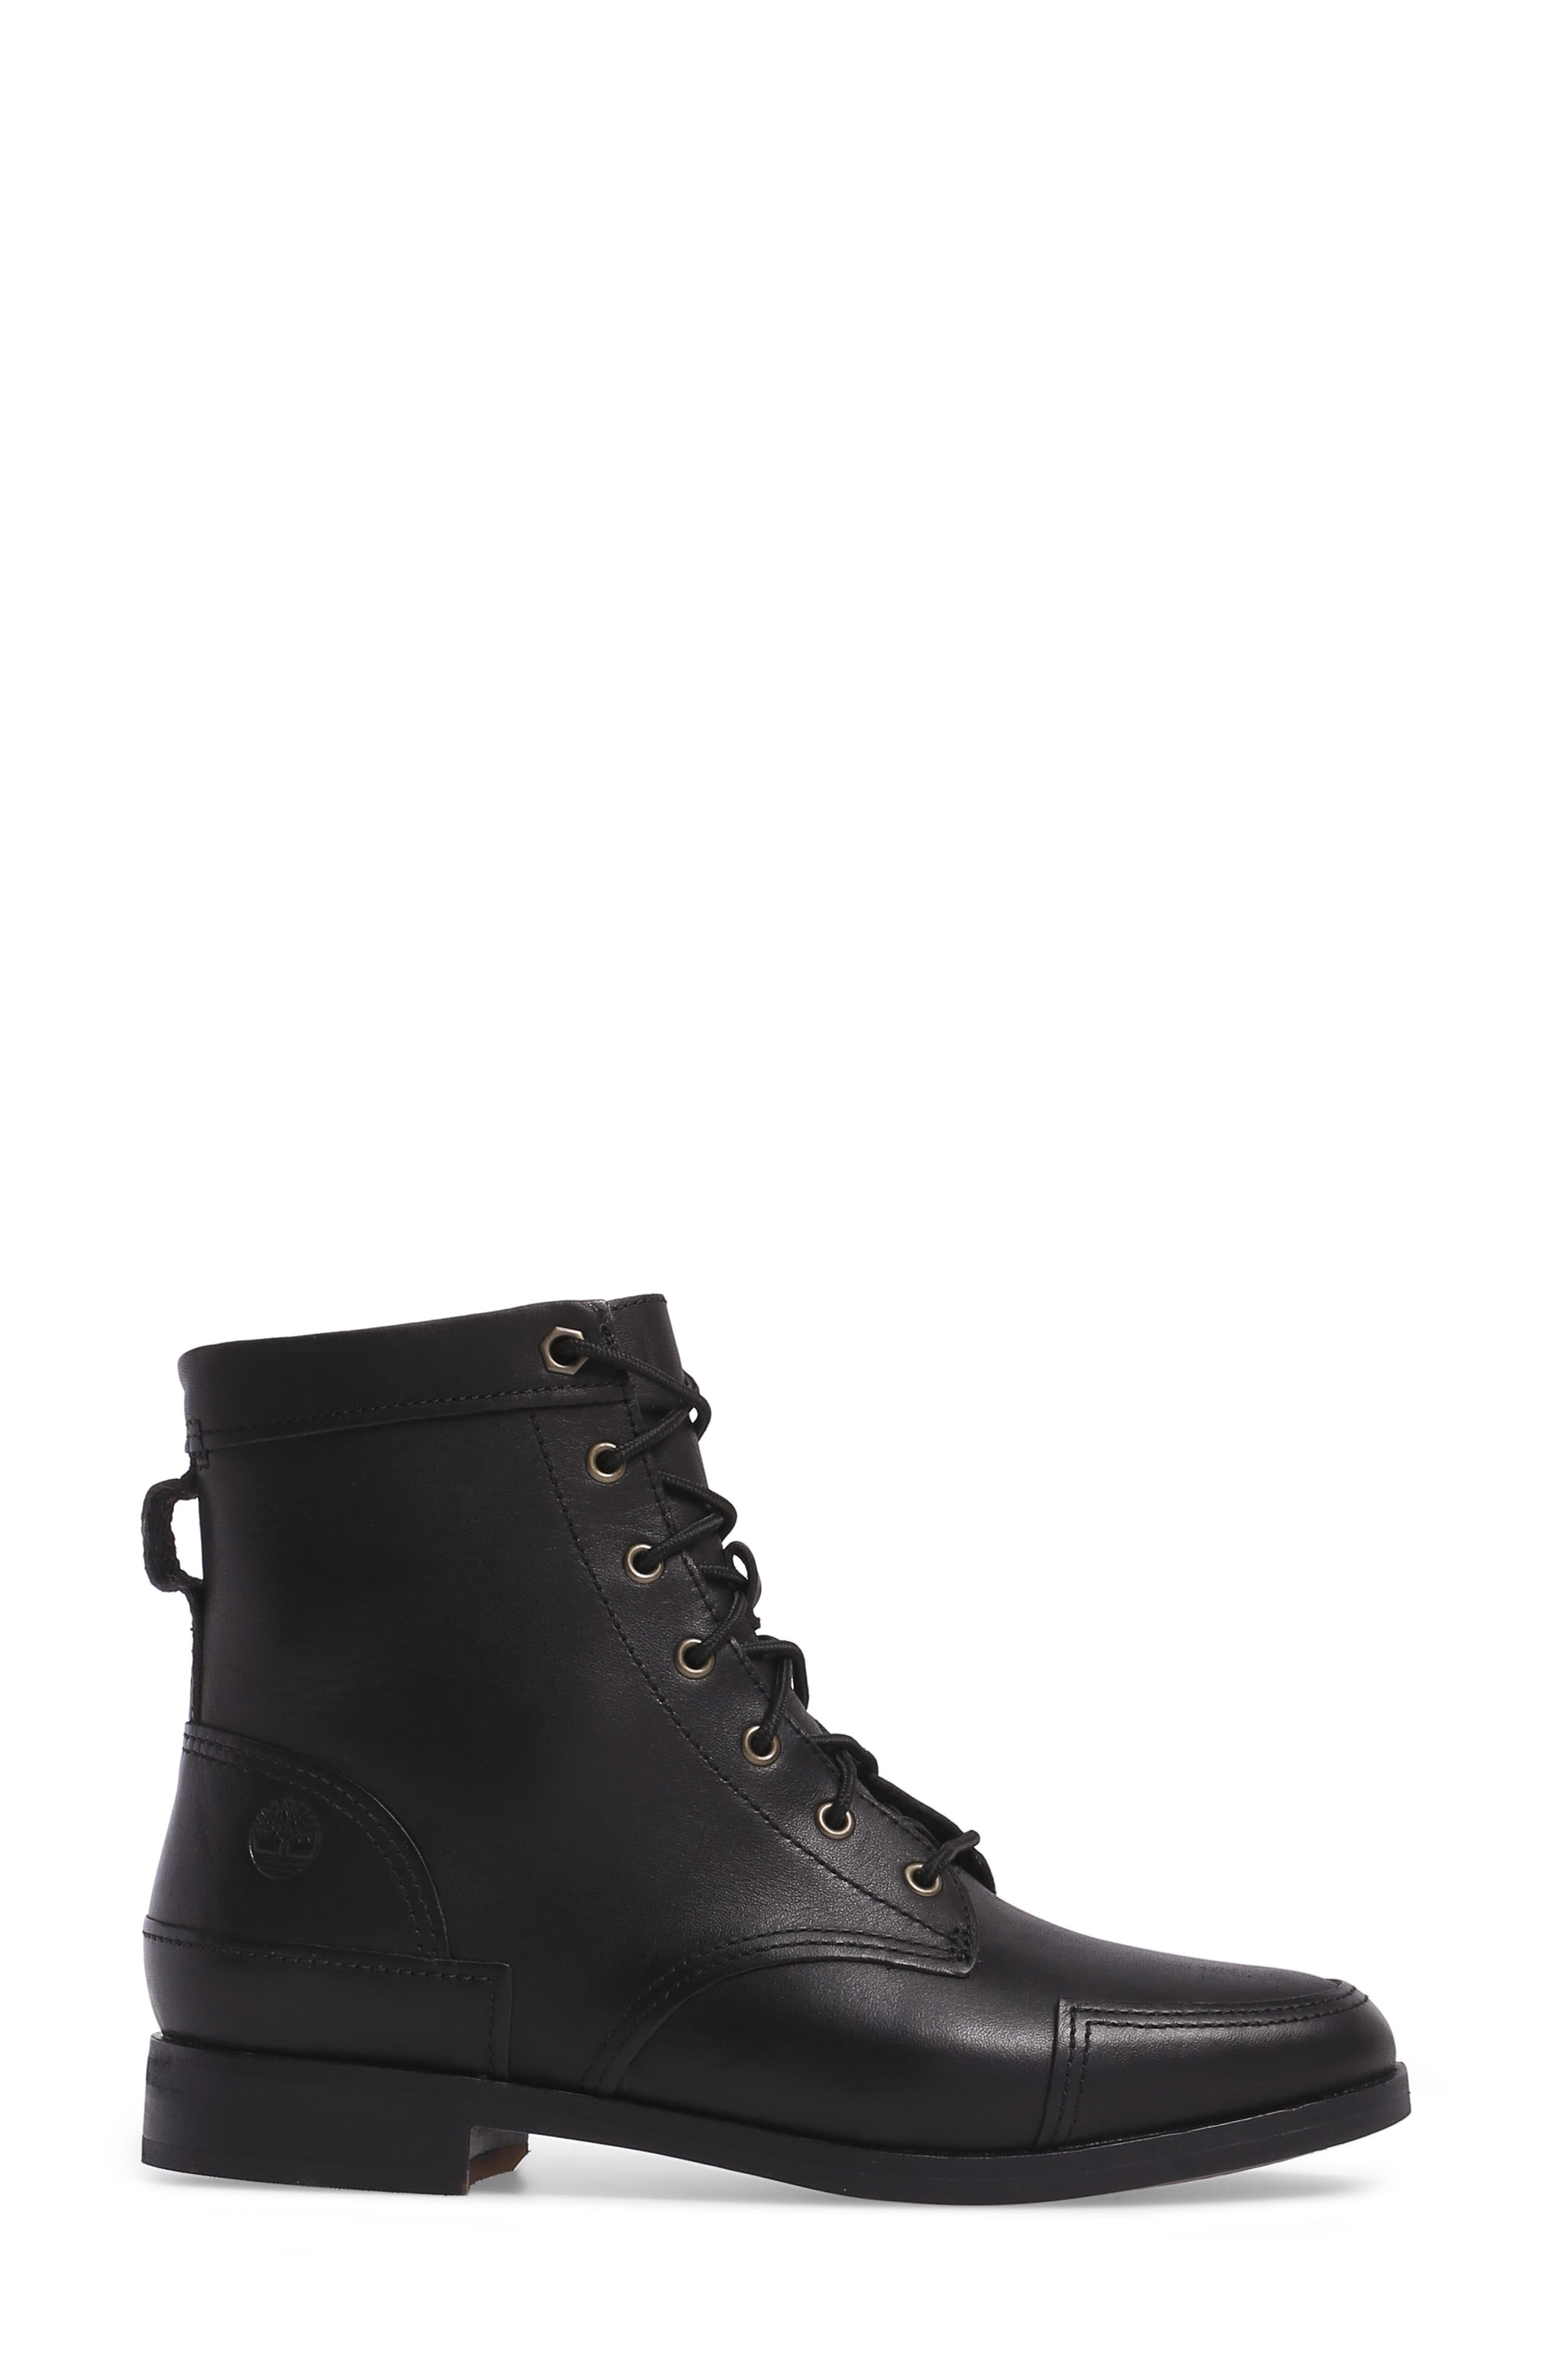 Alternate Image 3  - Timberland Somers Falls Lace-Up Boot (Women)